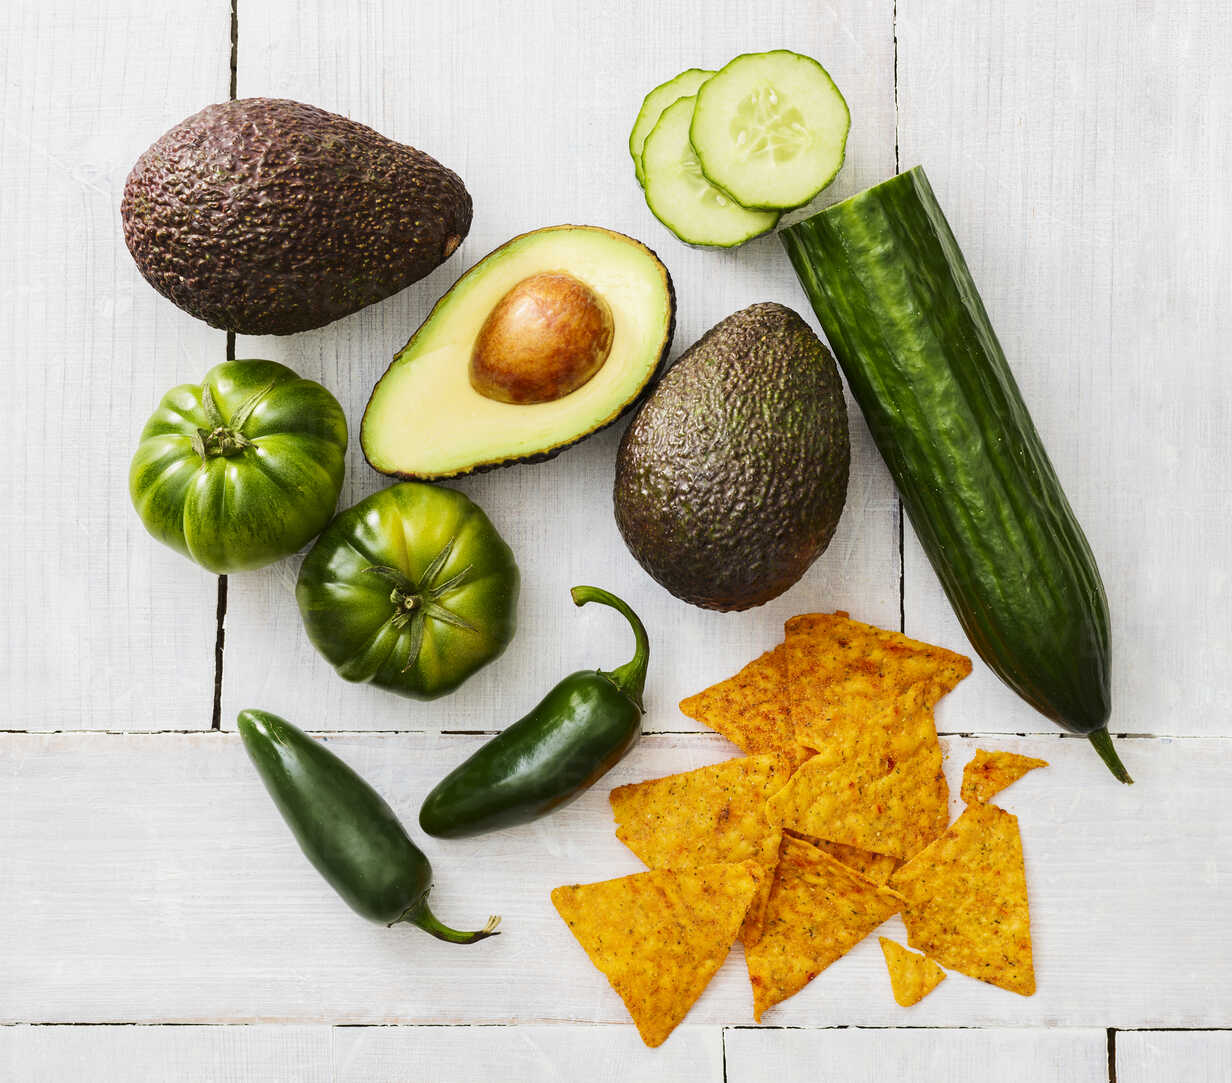 Sliced and whole avocado, green tomatoes, Jalapeno peppers, cucumber and tortilla chips - KSWF01841 - Kai Schwabe/Westend61